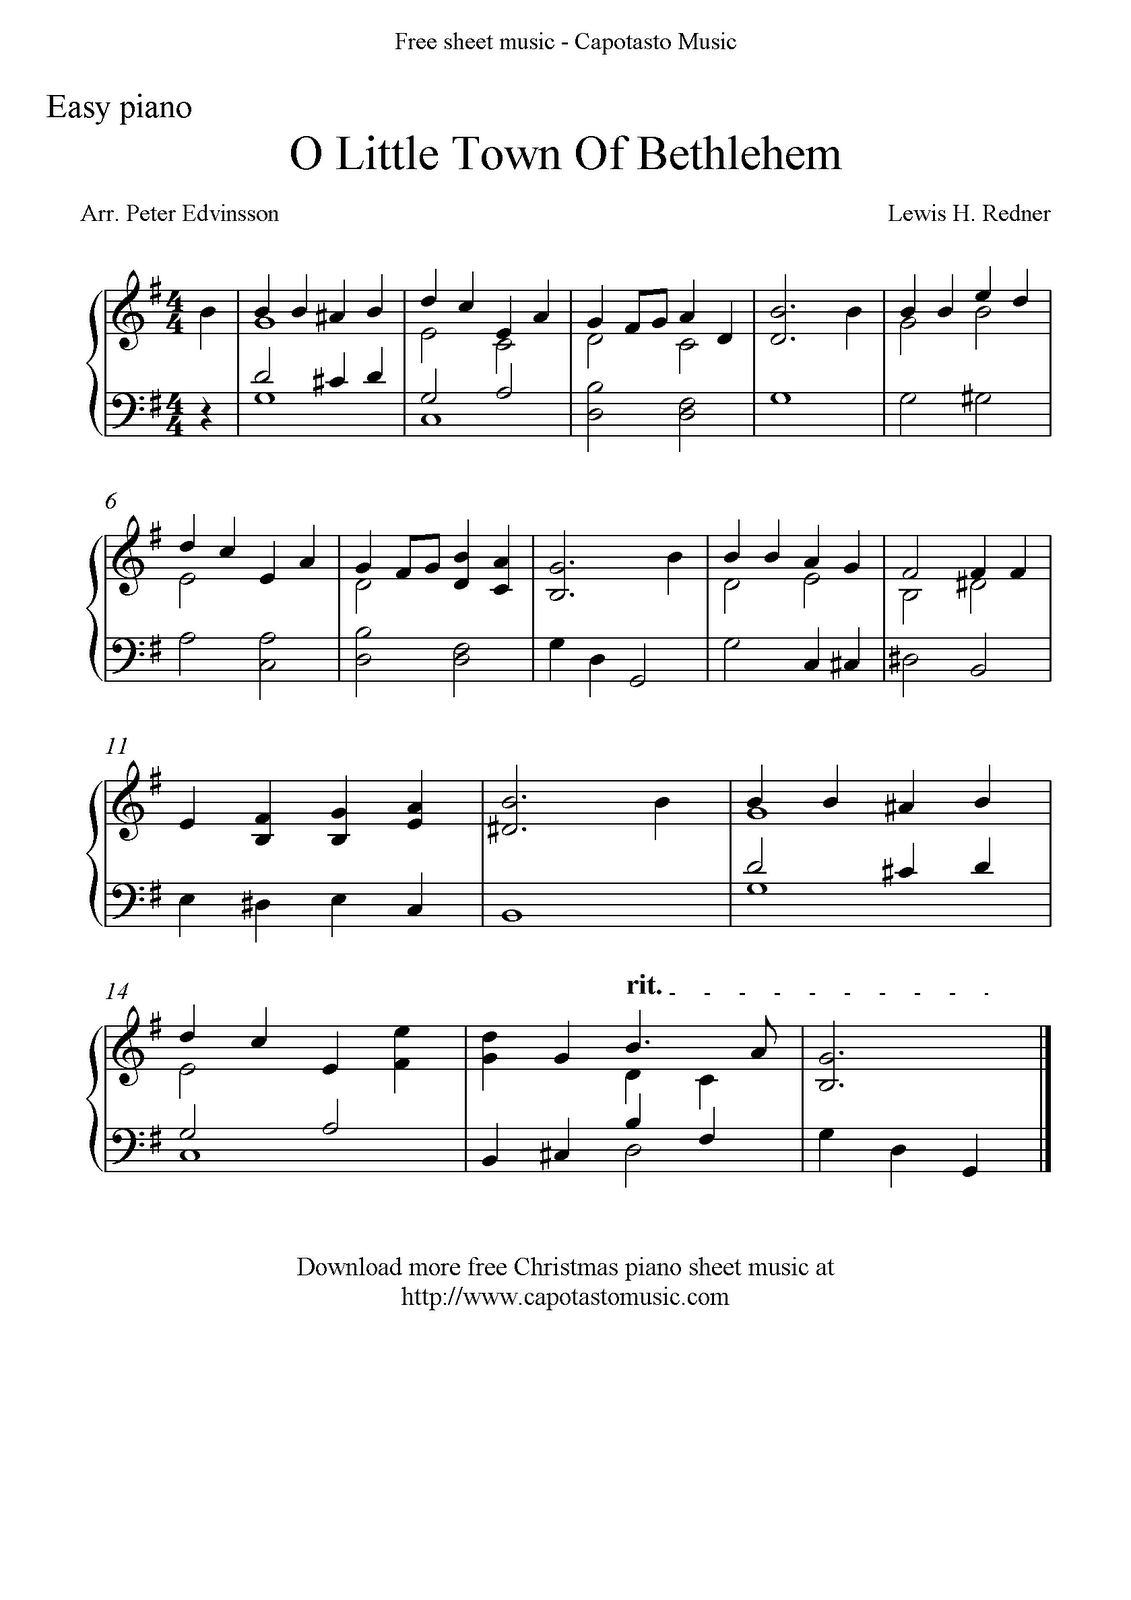 Easy Piano Solo Arrangementpeter Edvinsson Of The Christmas - Christmas Carols Sheet Music Free Printable